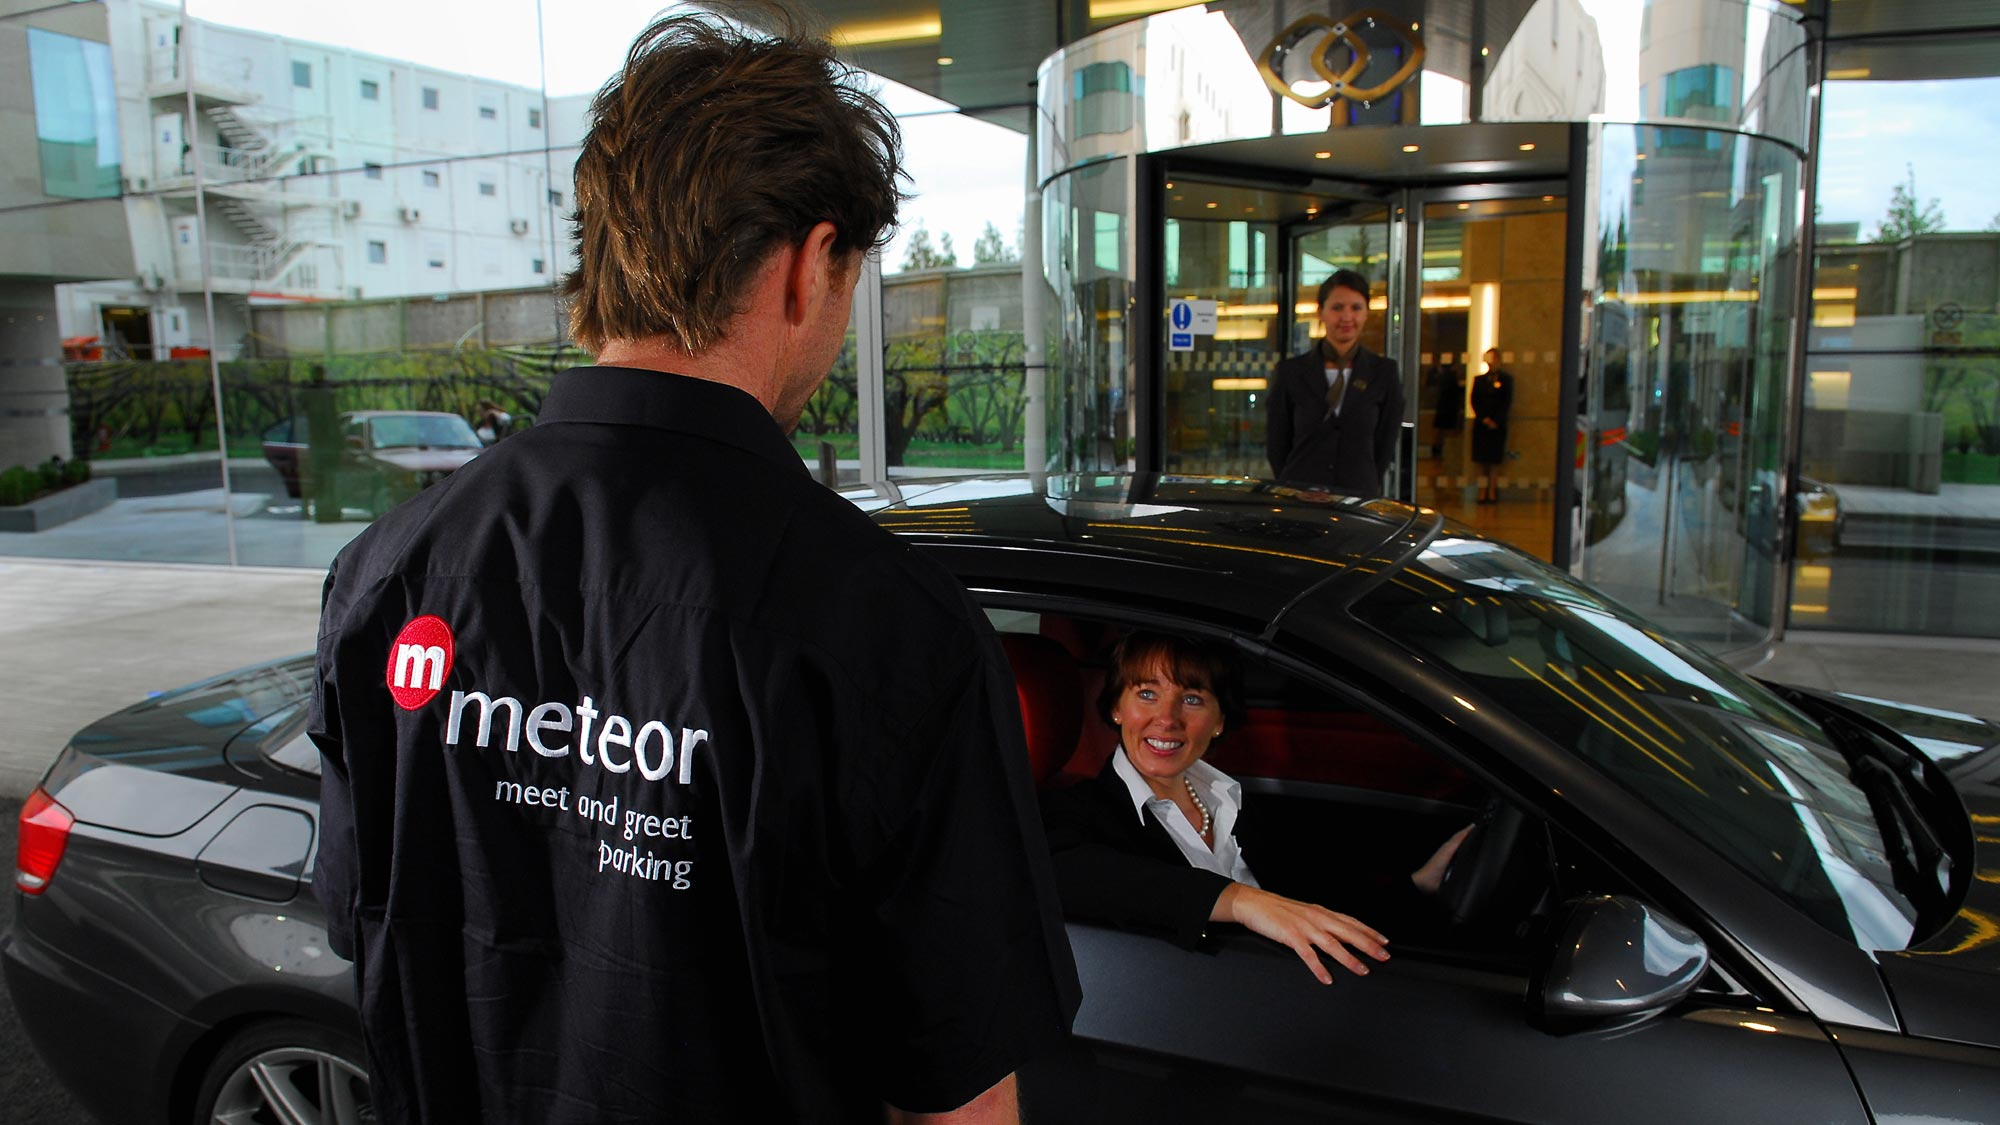 Meteor meet and greet meet and greet heathrow i love driver meeting customer driver meeting customer why everyone used meteors meet and greet heathrow m4hsunfo